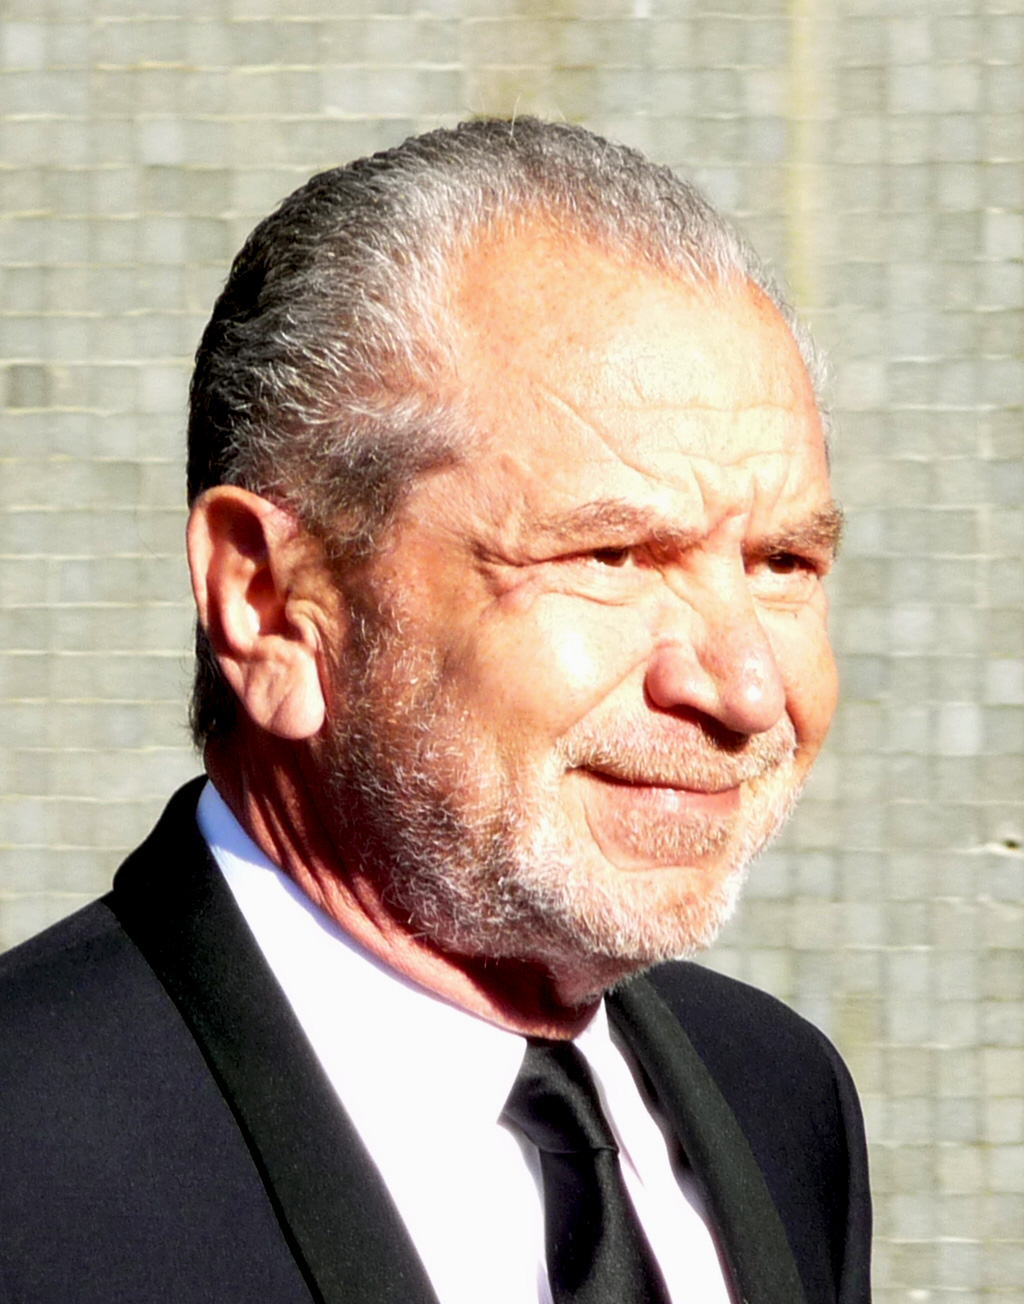 alan sugar Alan sugar, producer: blame it on the moon alan sugar was born on march 24, 1947 in hackney, london, england as alan michael sugar he is a producer and actor, known.